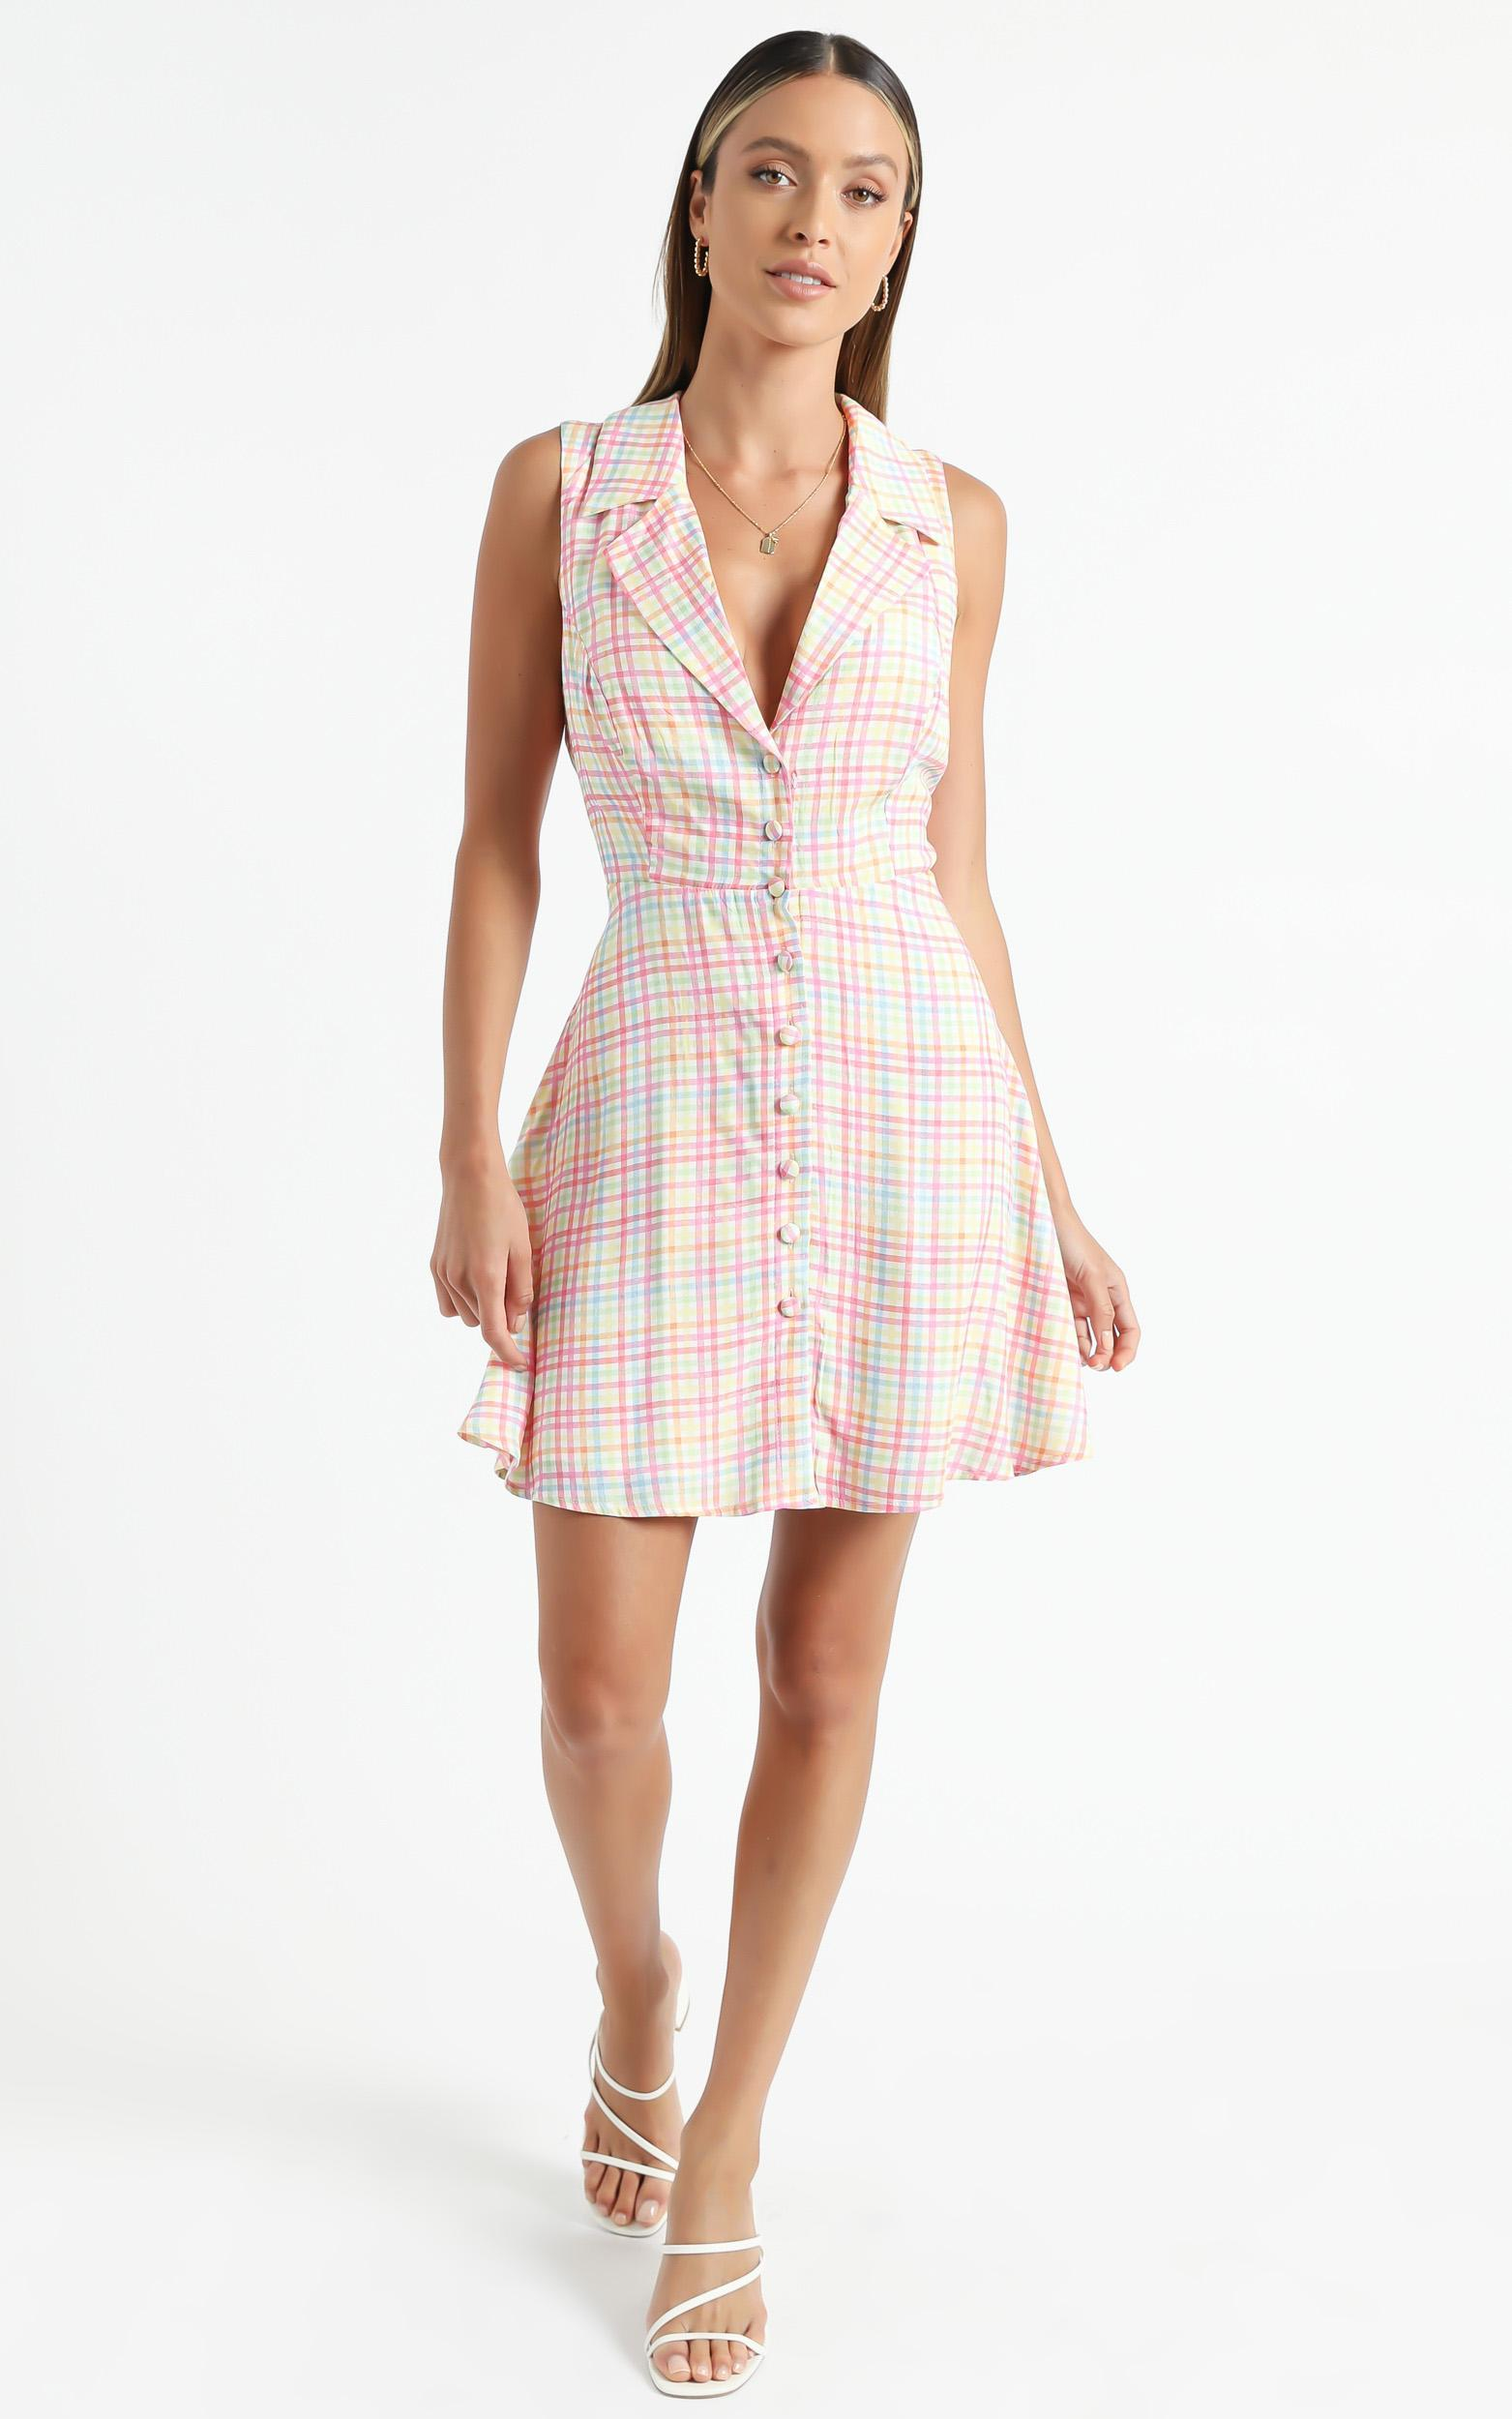 Nimos Dress in Rainbow Check - 6 (XS), Multi, hi-res image number null